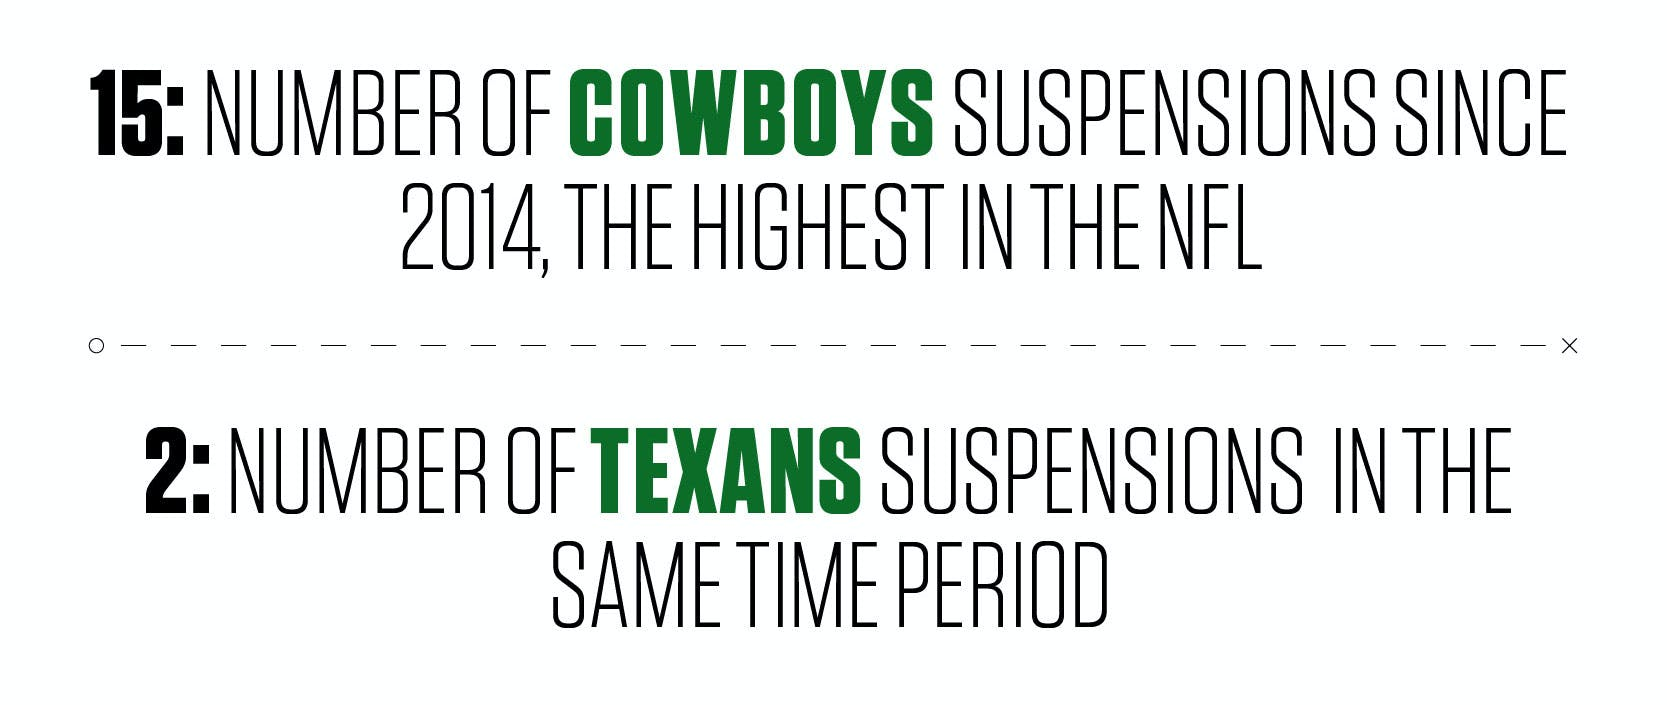 15: Number of Cowboys suspensions since 2014, the highest in the NFL. 2: Number of Texans suspensions in the same time period.